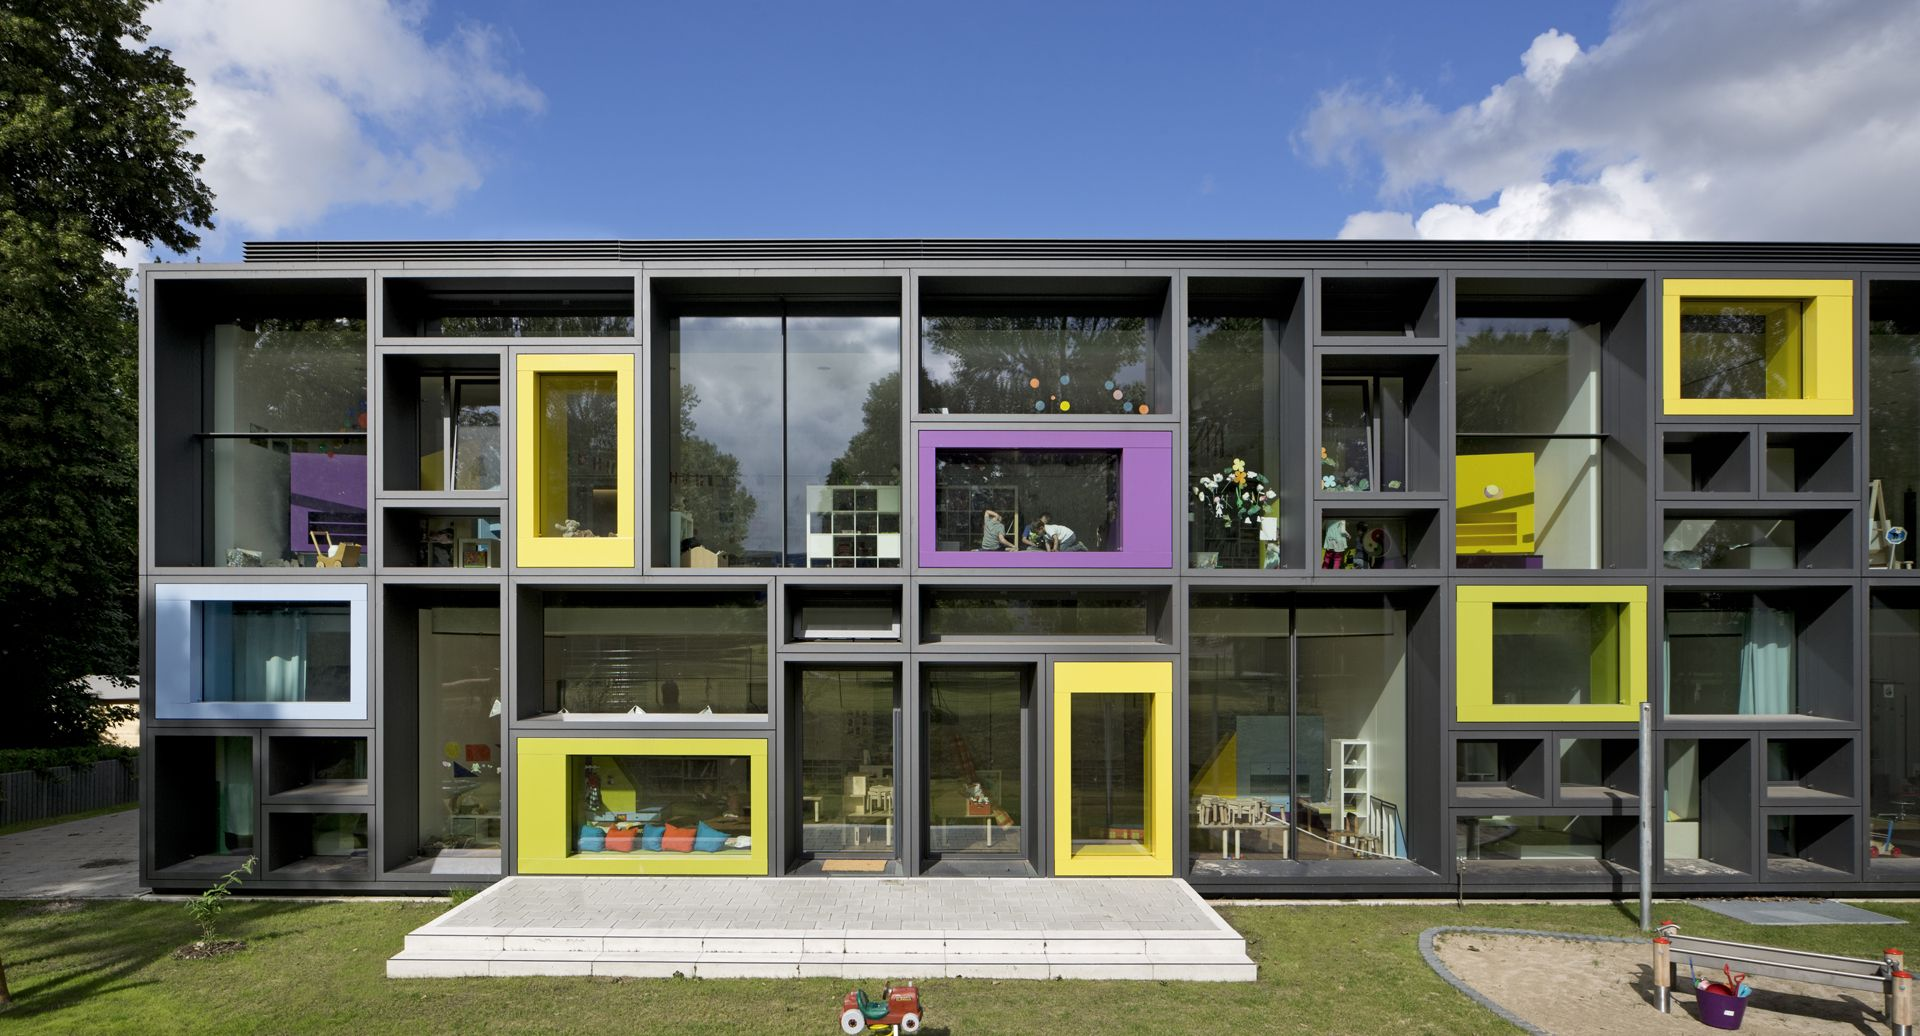 Gallery Of Beiersdorf Childrens Day Care Centre - Home daycare design ideas